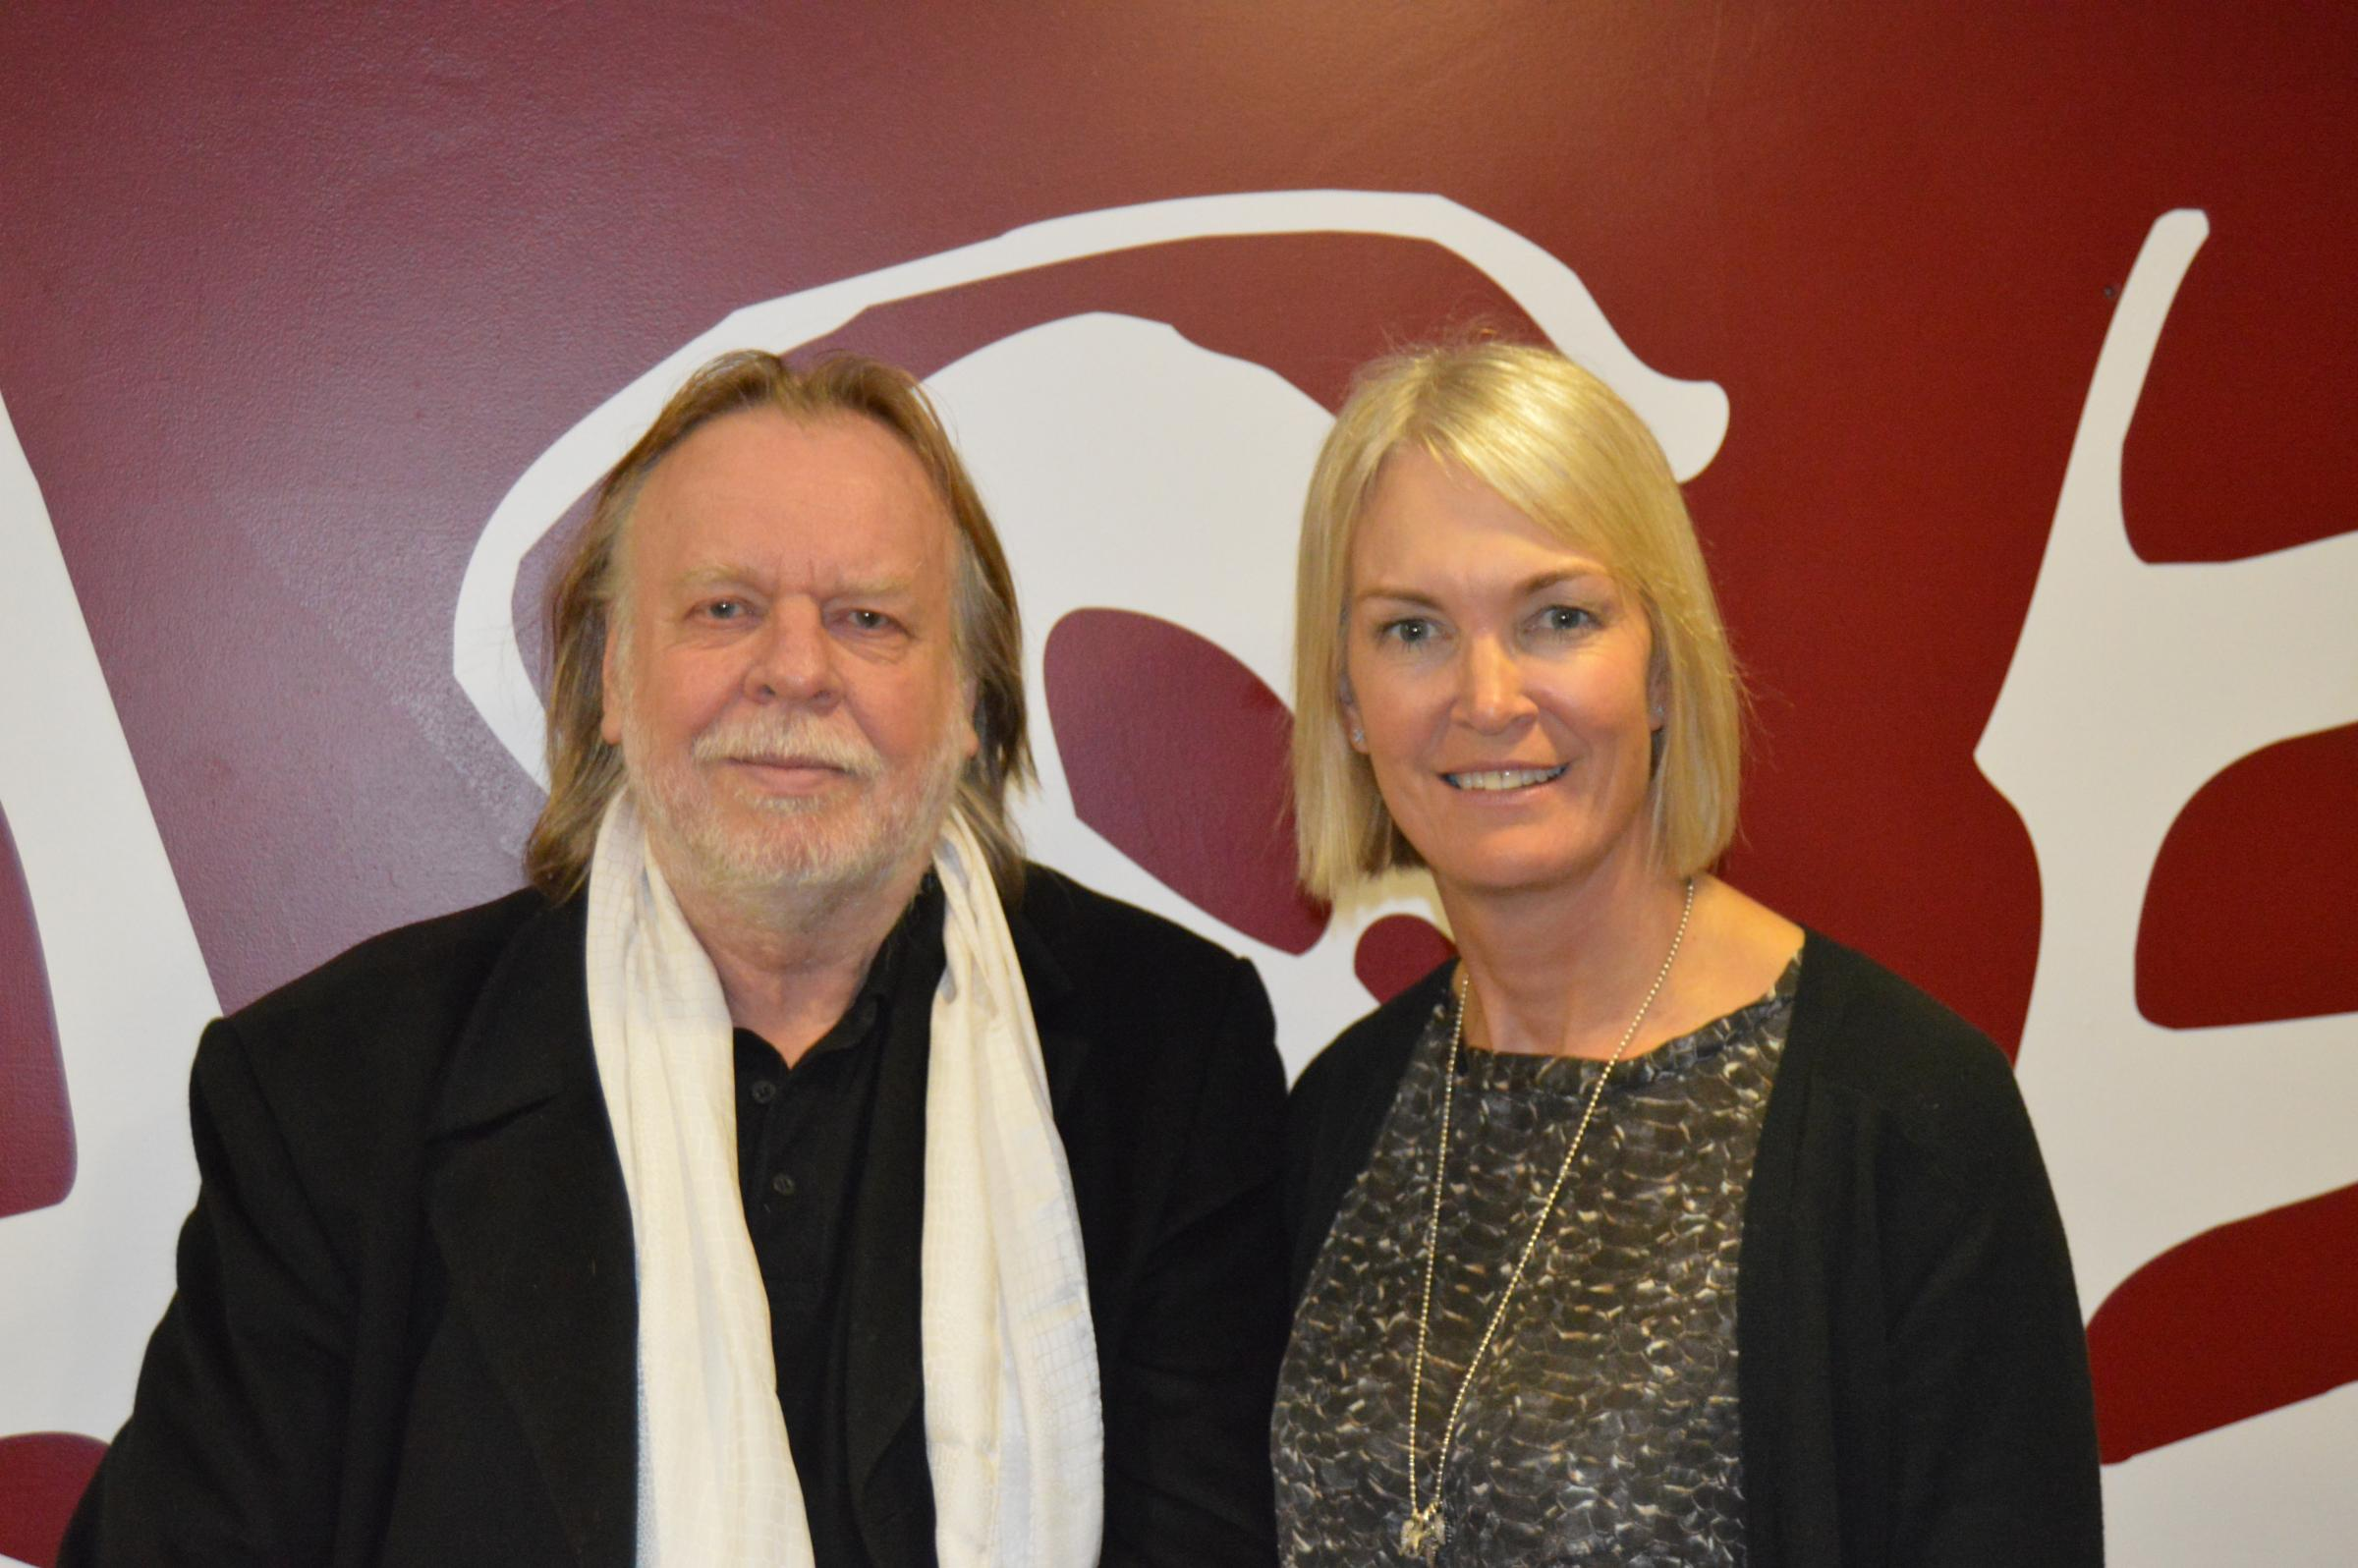 Rick Wakeman  and Margot James at Base Studios. Photograph courtesy of Liam White.